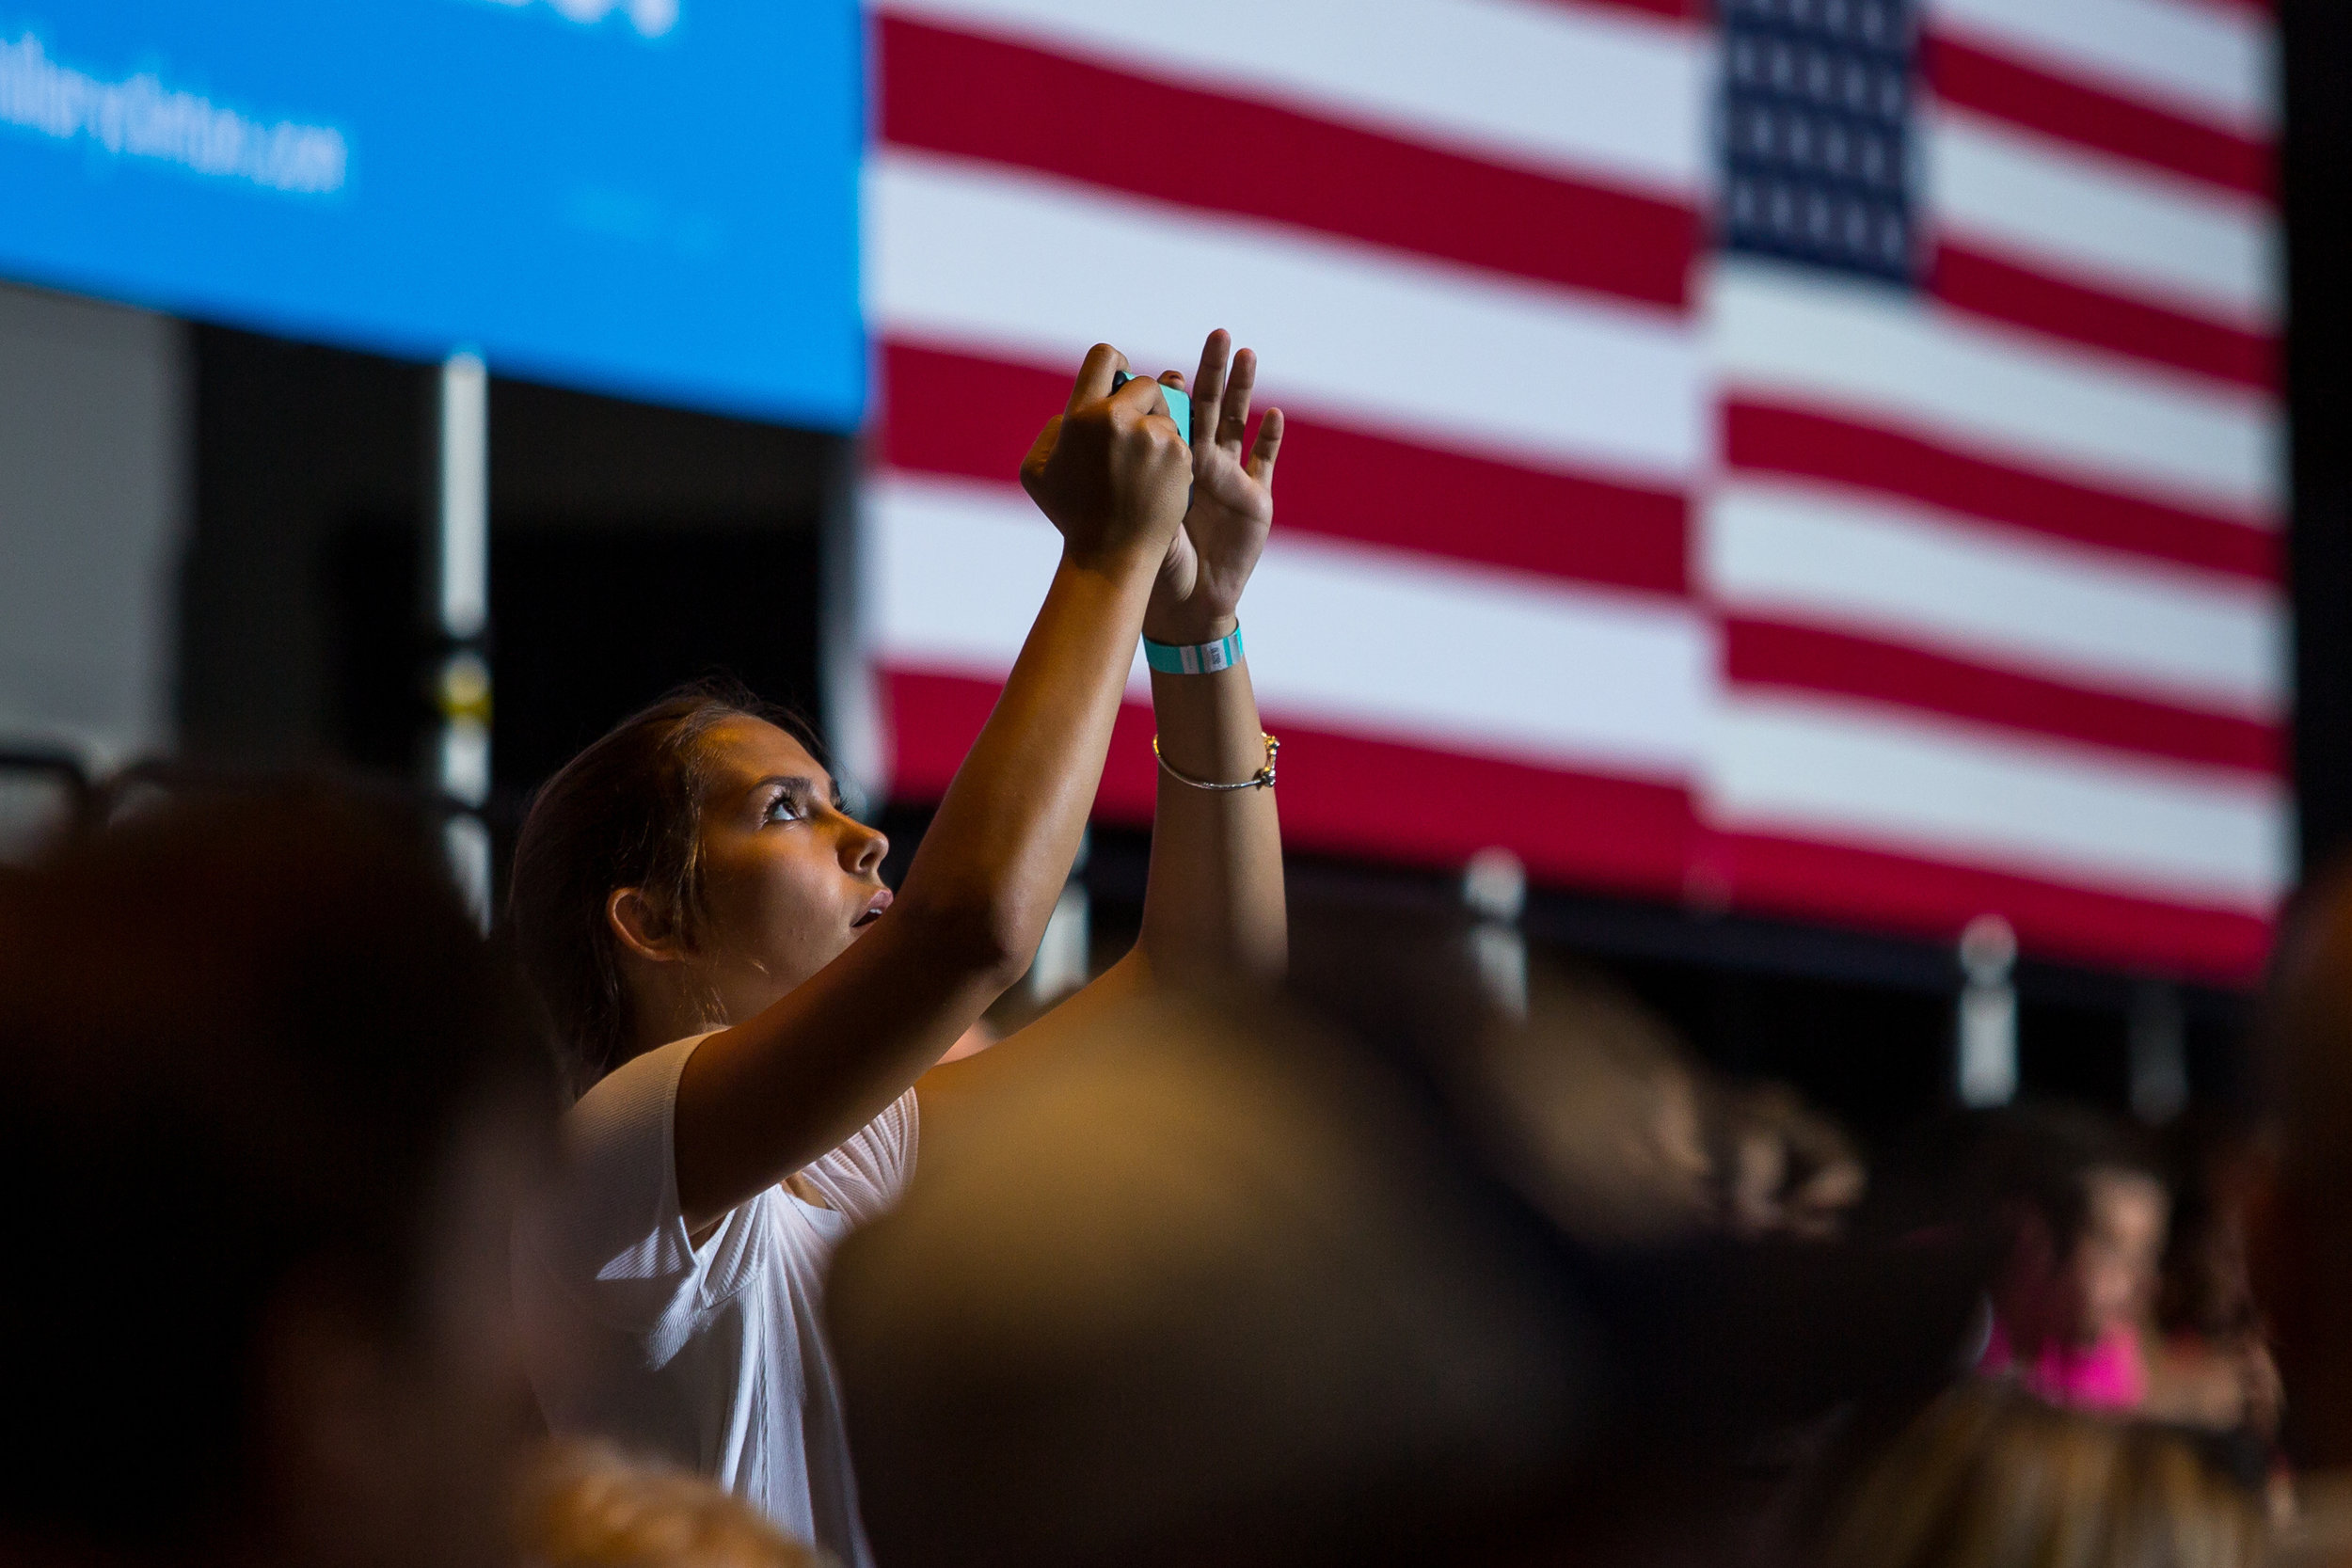 A girls takes a photo on her phone before the beginning of the Hillary Clinton and Tim Kaine rally at the David L. Lawrence Convention Center on Saturday evening. Clinton has clenched the democratic nomination and is the first major party female nomination in US history.